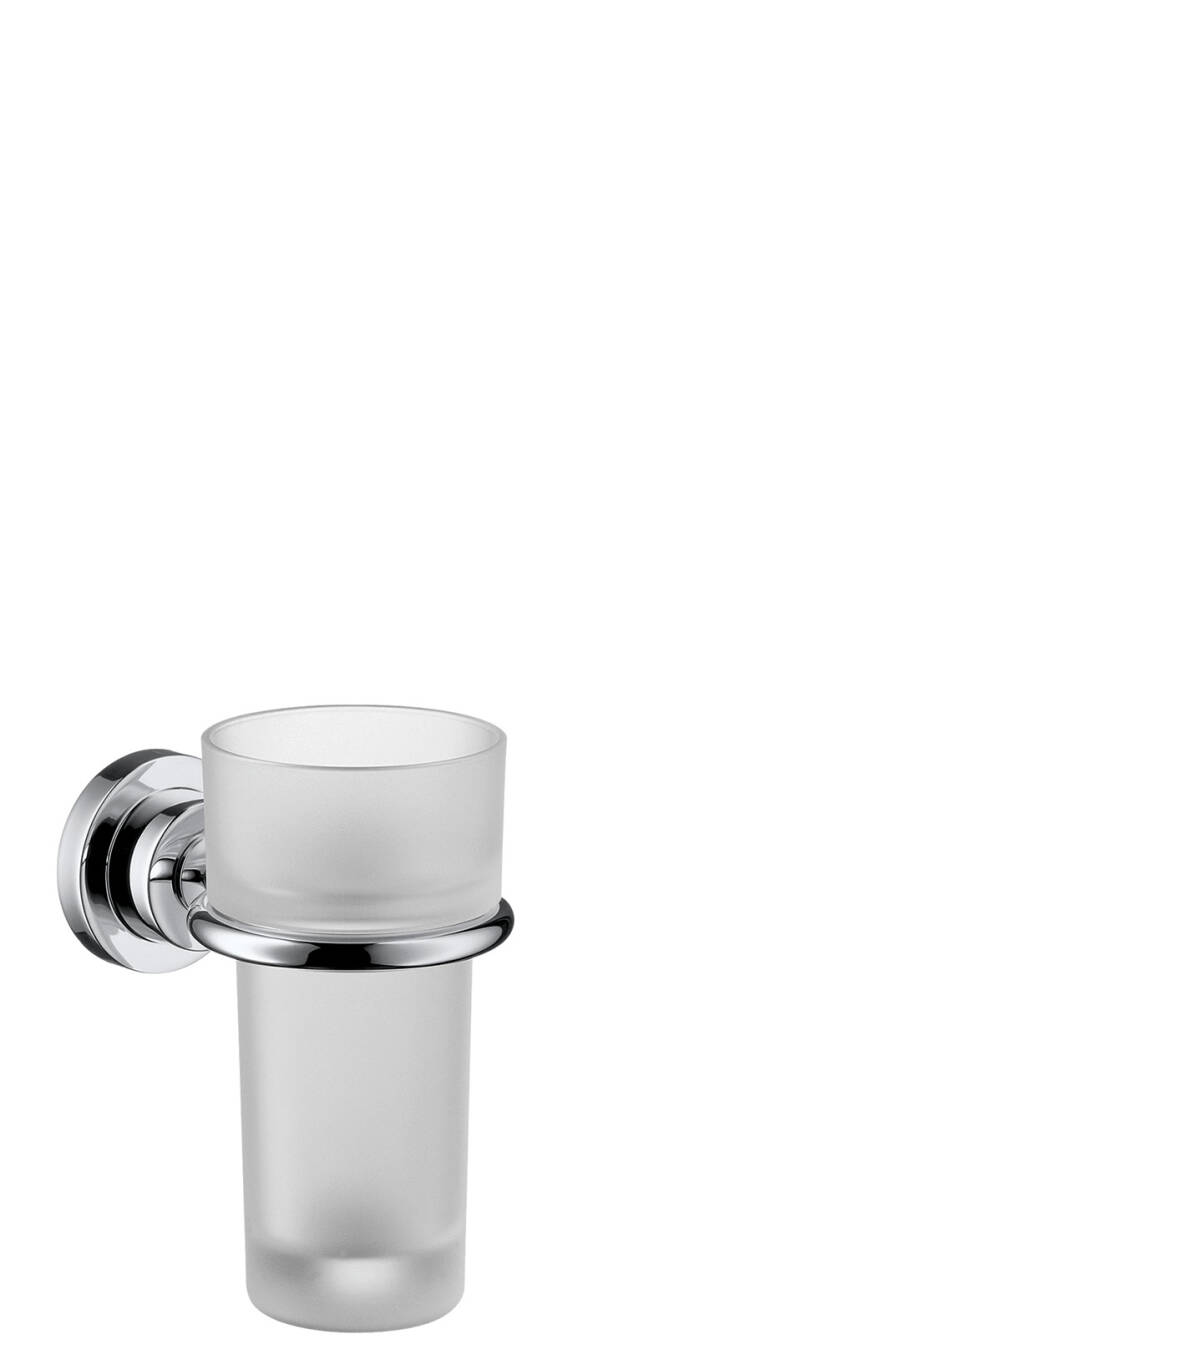 Toothbrush tumbler, Chrome, 41734000